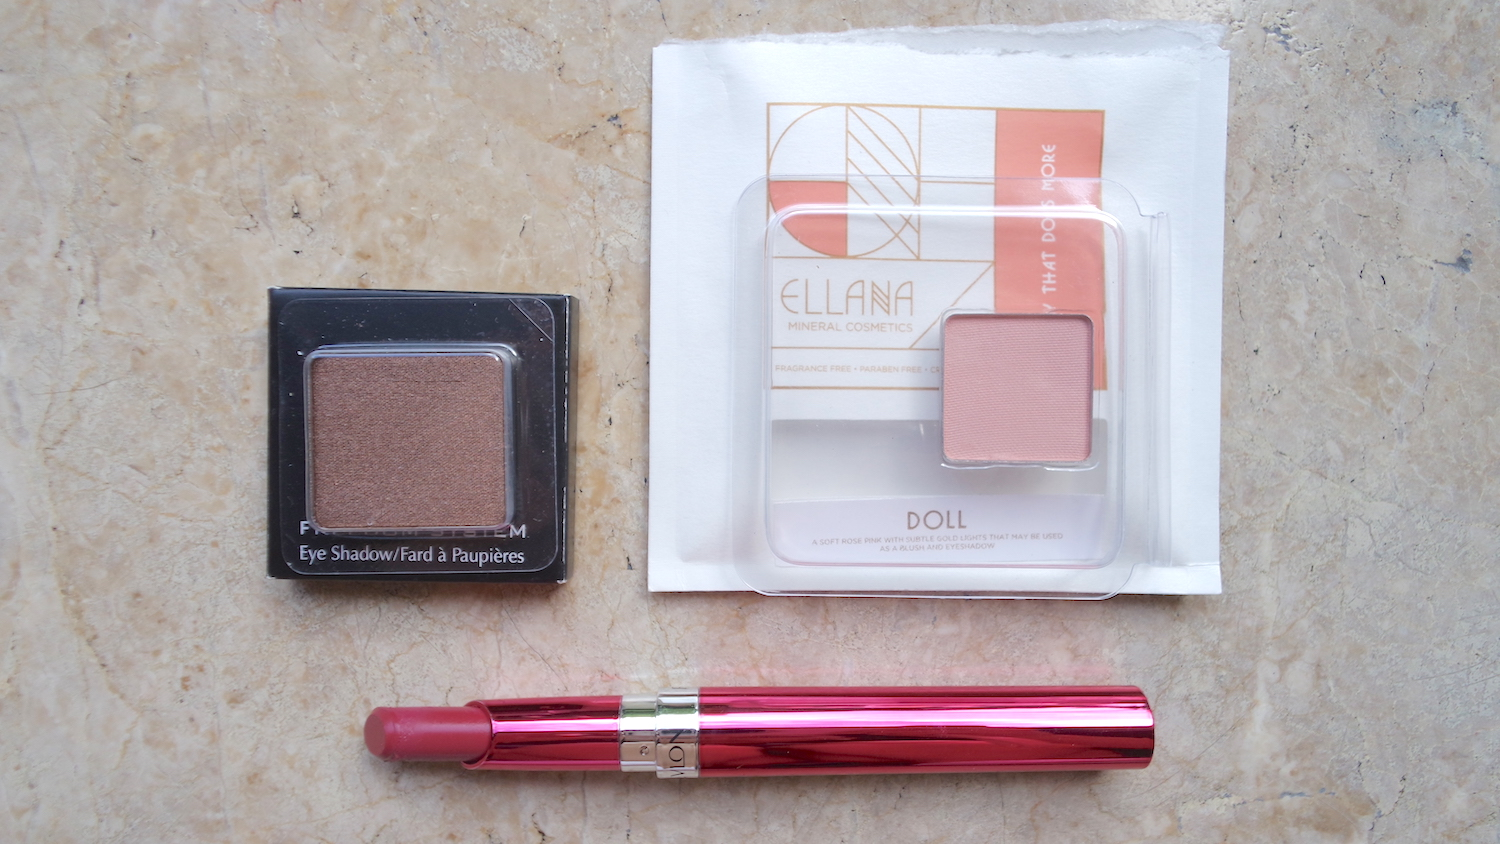 Inglot Freedom System Eyeshadow in Pearl, PHP 425 / 2.7g, Ellana Minerals Pressed Multipurpose Powder in Doll, PHP 200 / 2g, Revlon Ultra HD Gel Lip Color in Vineyard, PHP 575 / 1.7g